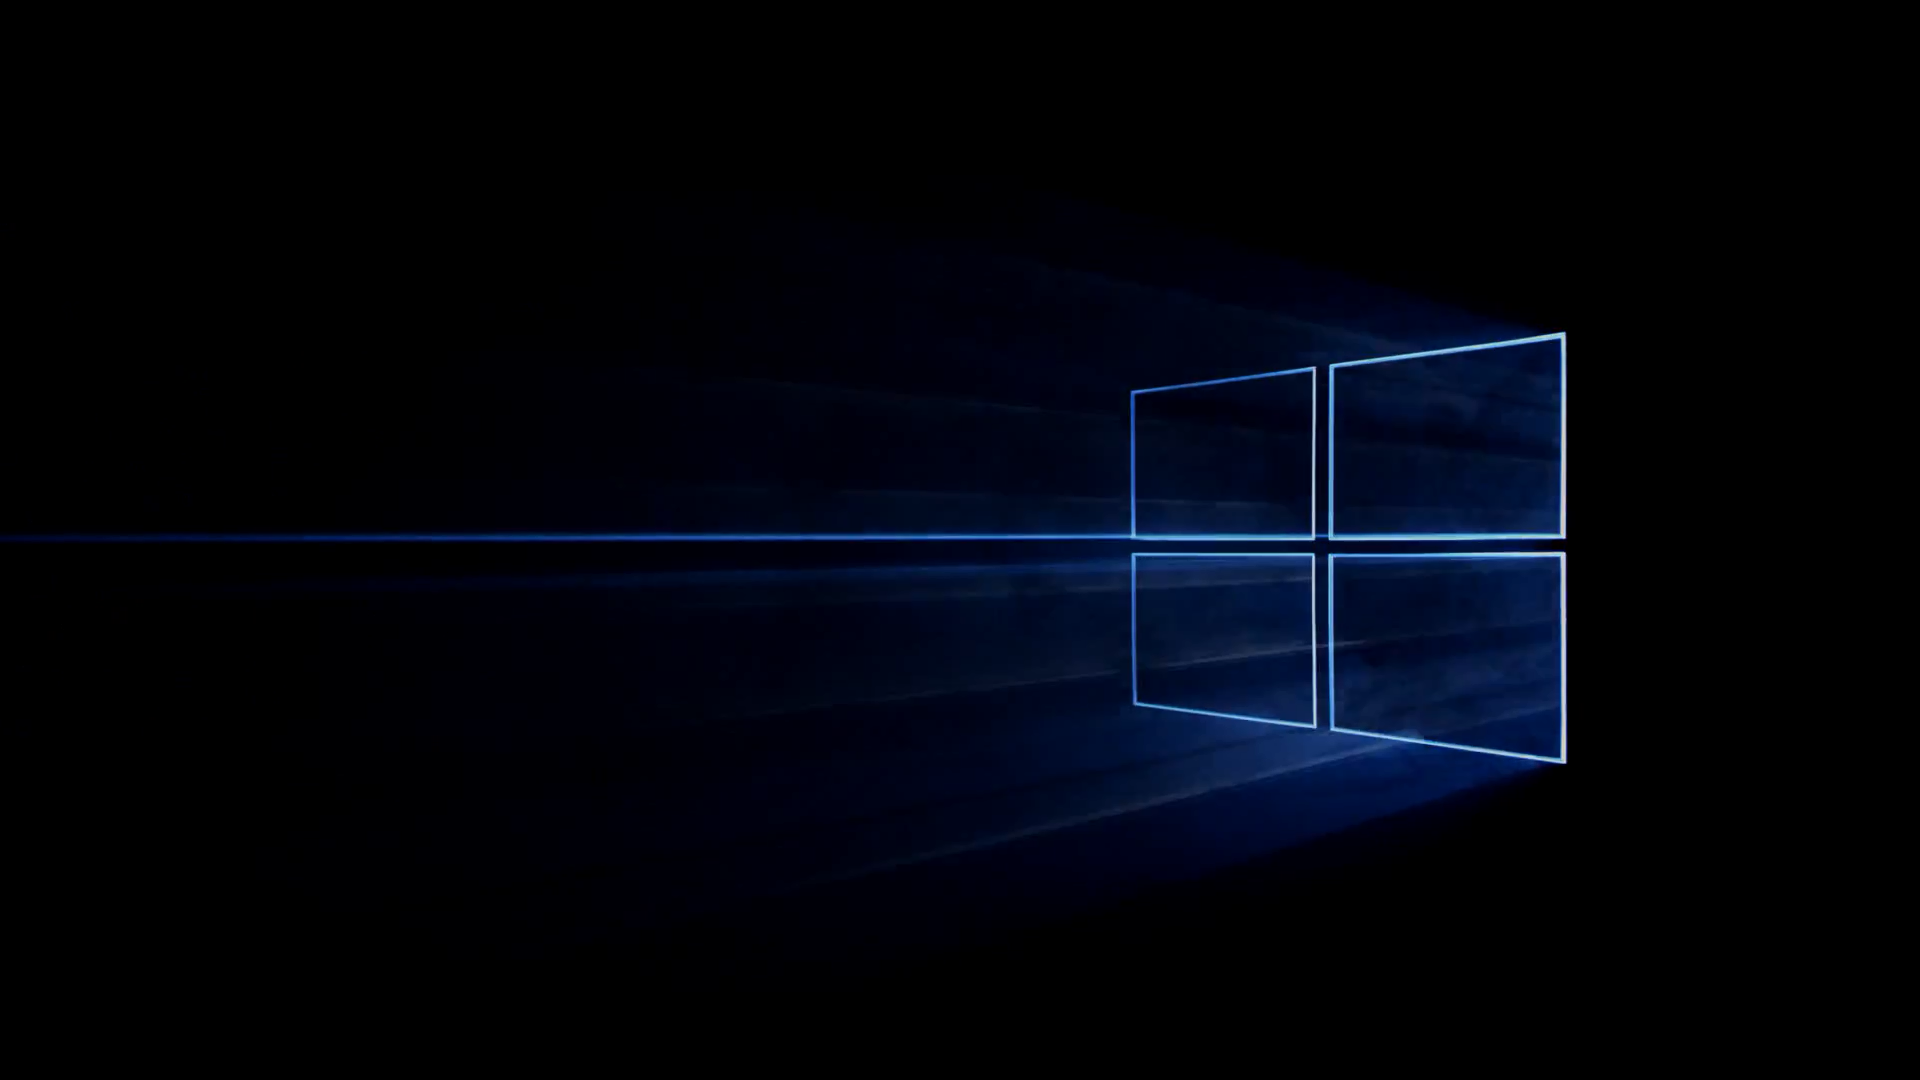 Creative Windows 10 Wallpaper: Windows 10 Backgrounds, Pictures, Images